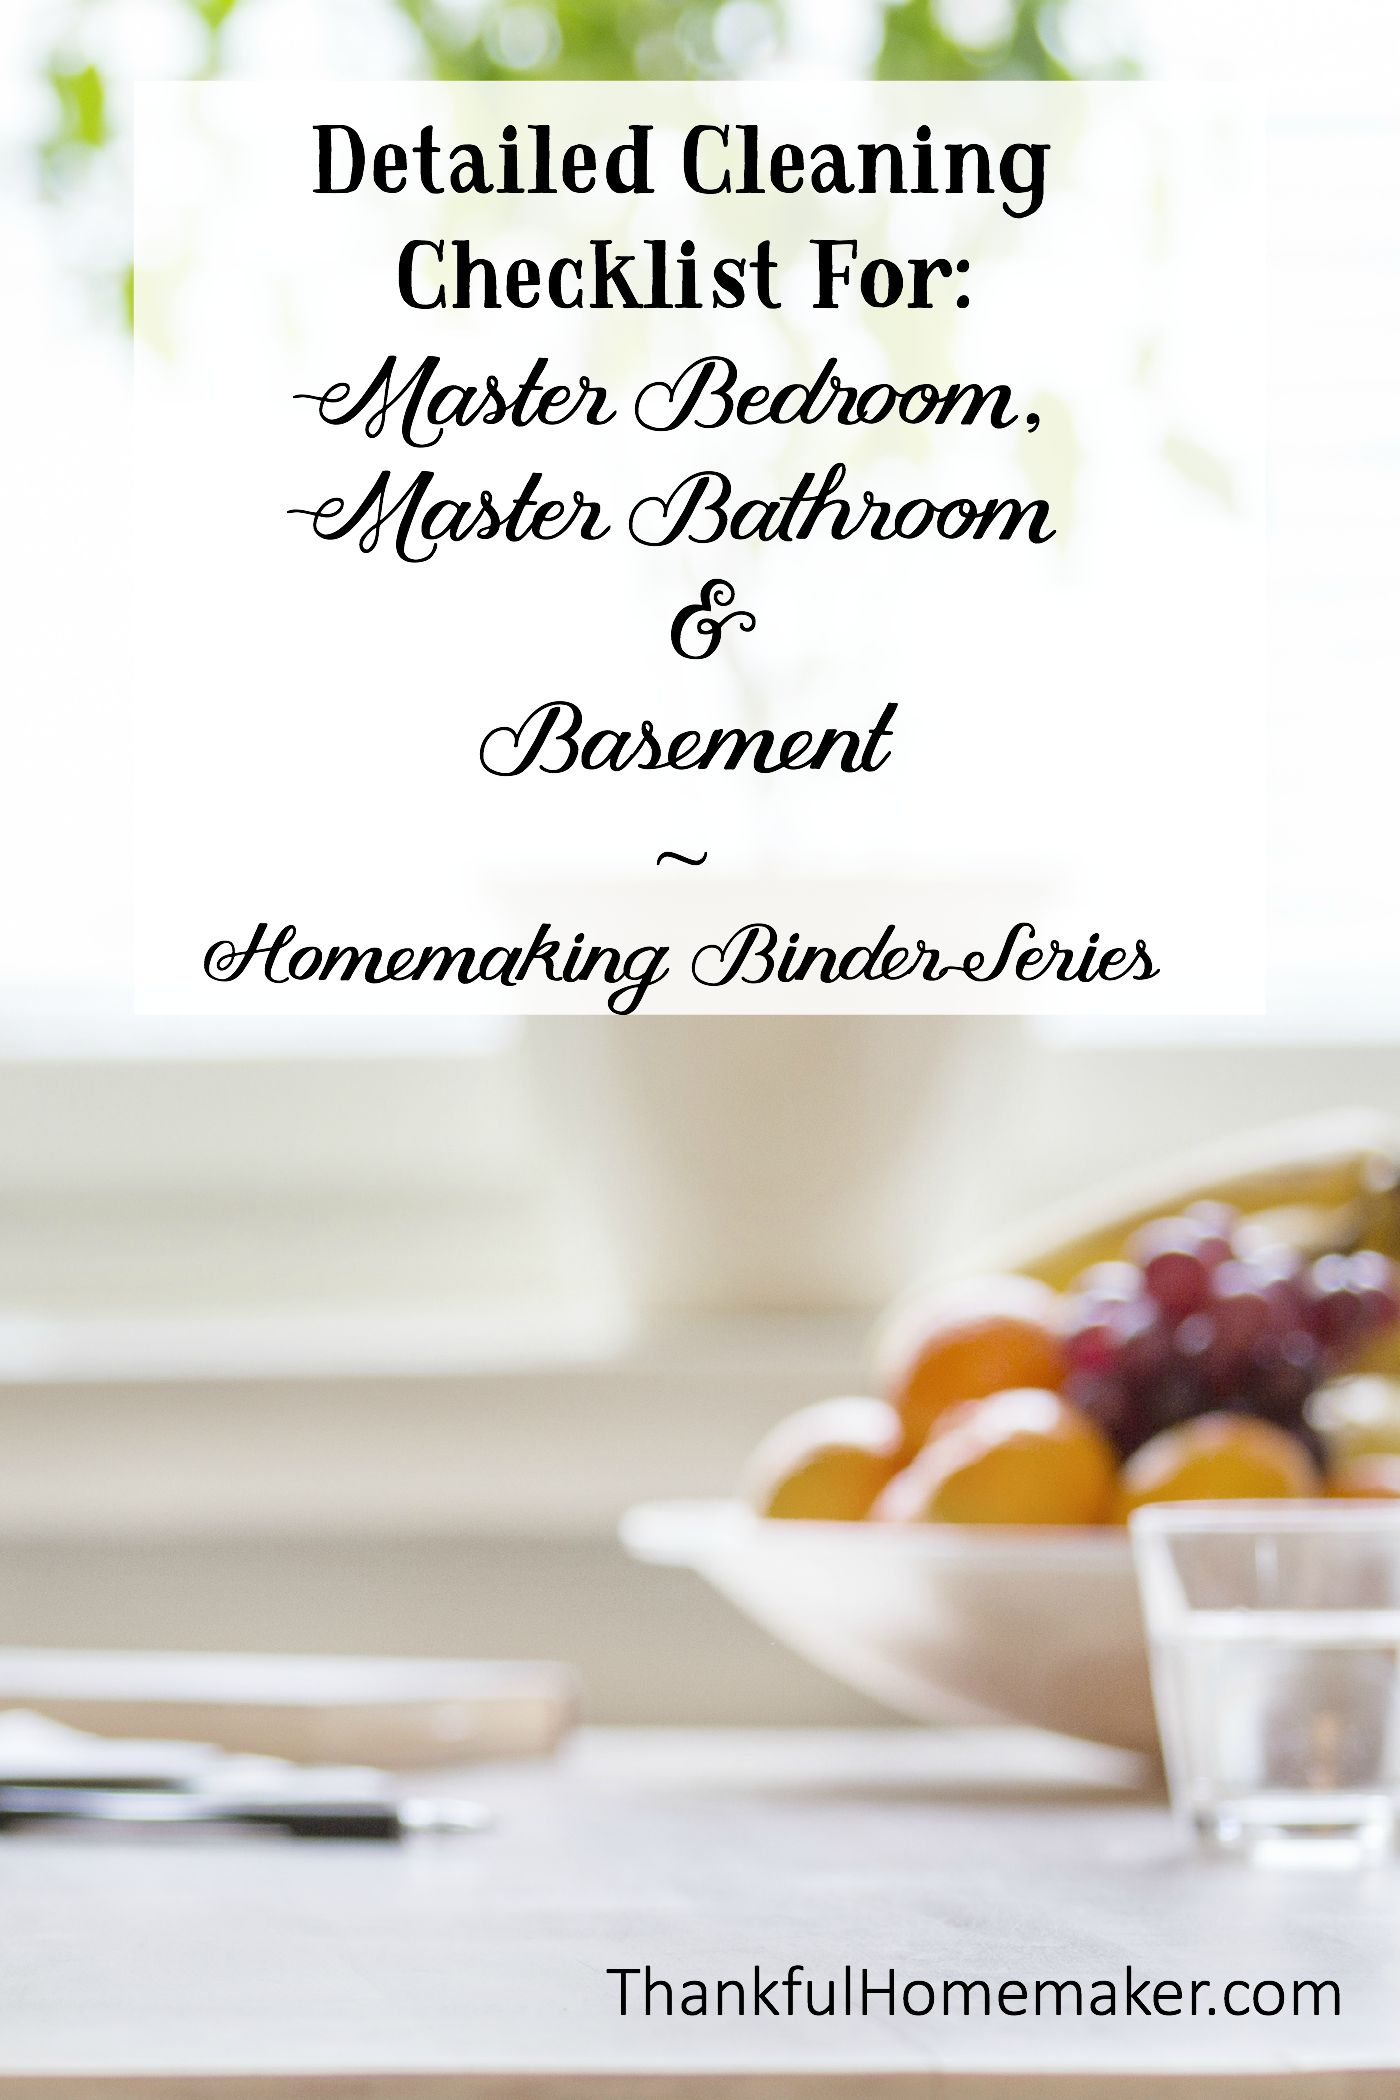 Homemaking Binder Series Detailed Cleaning Checklists For